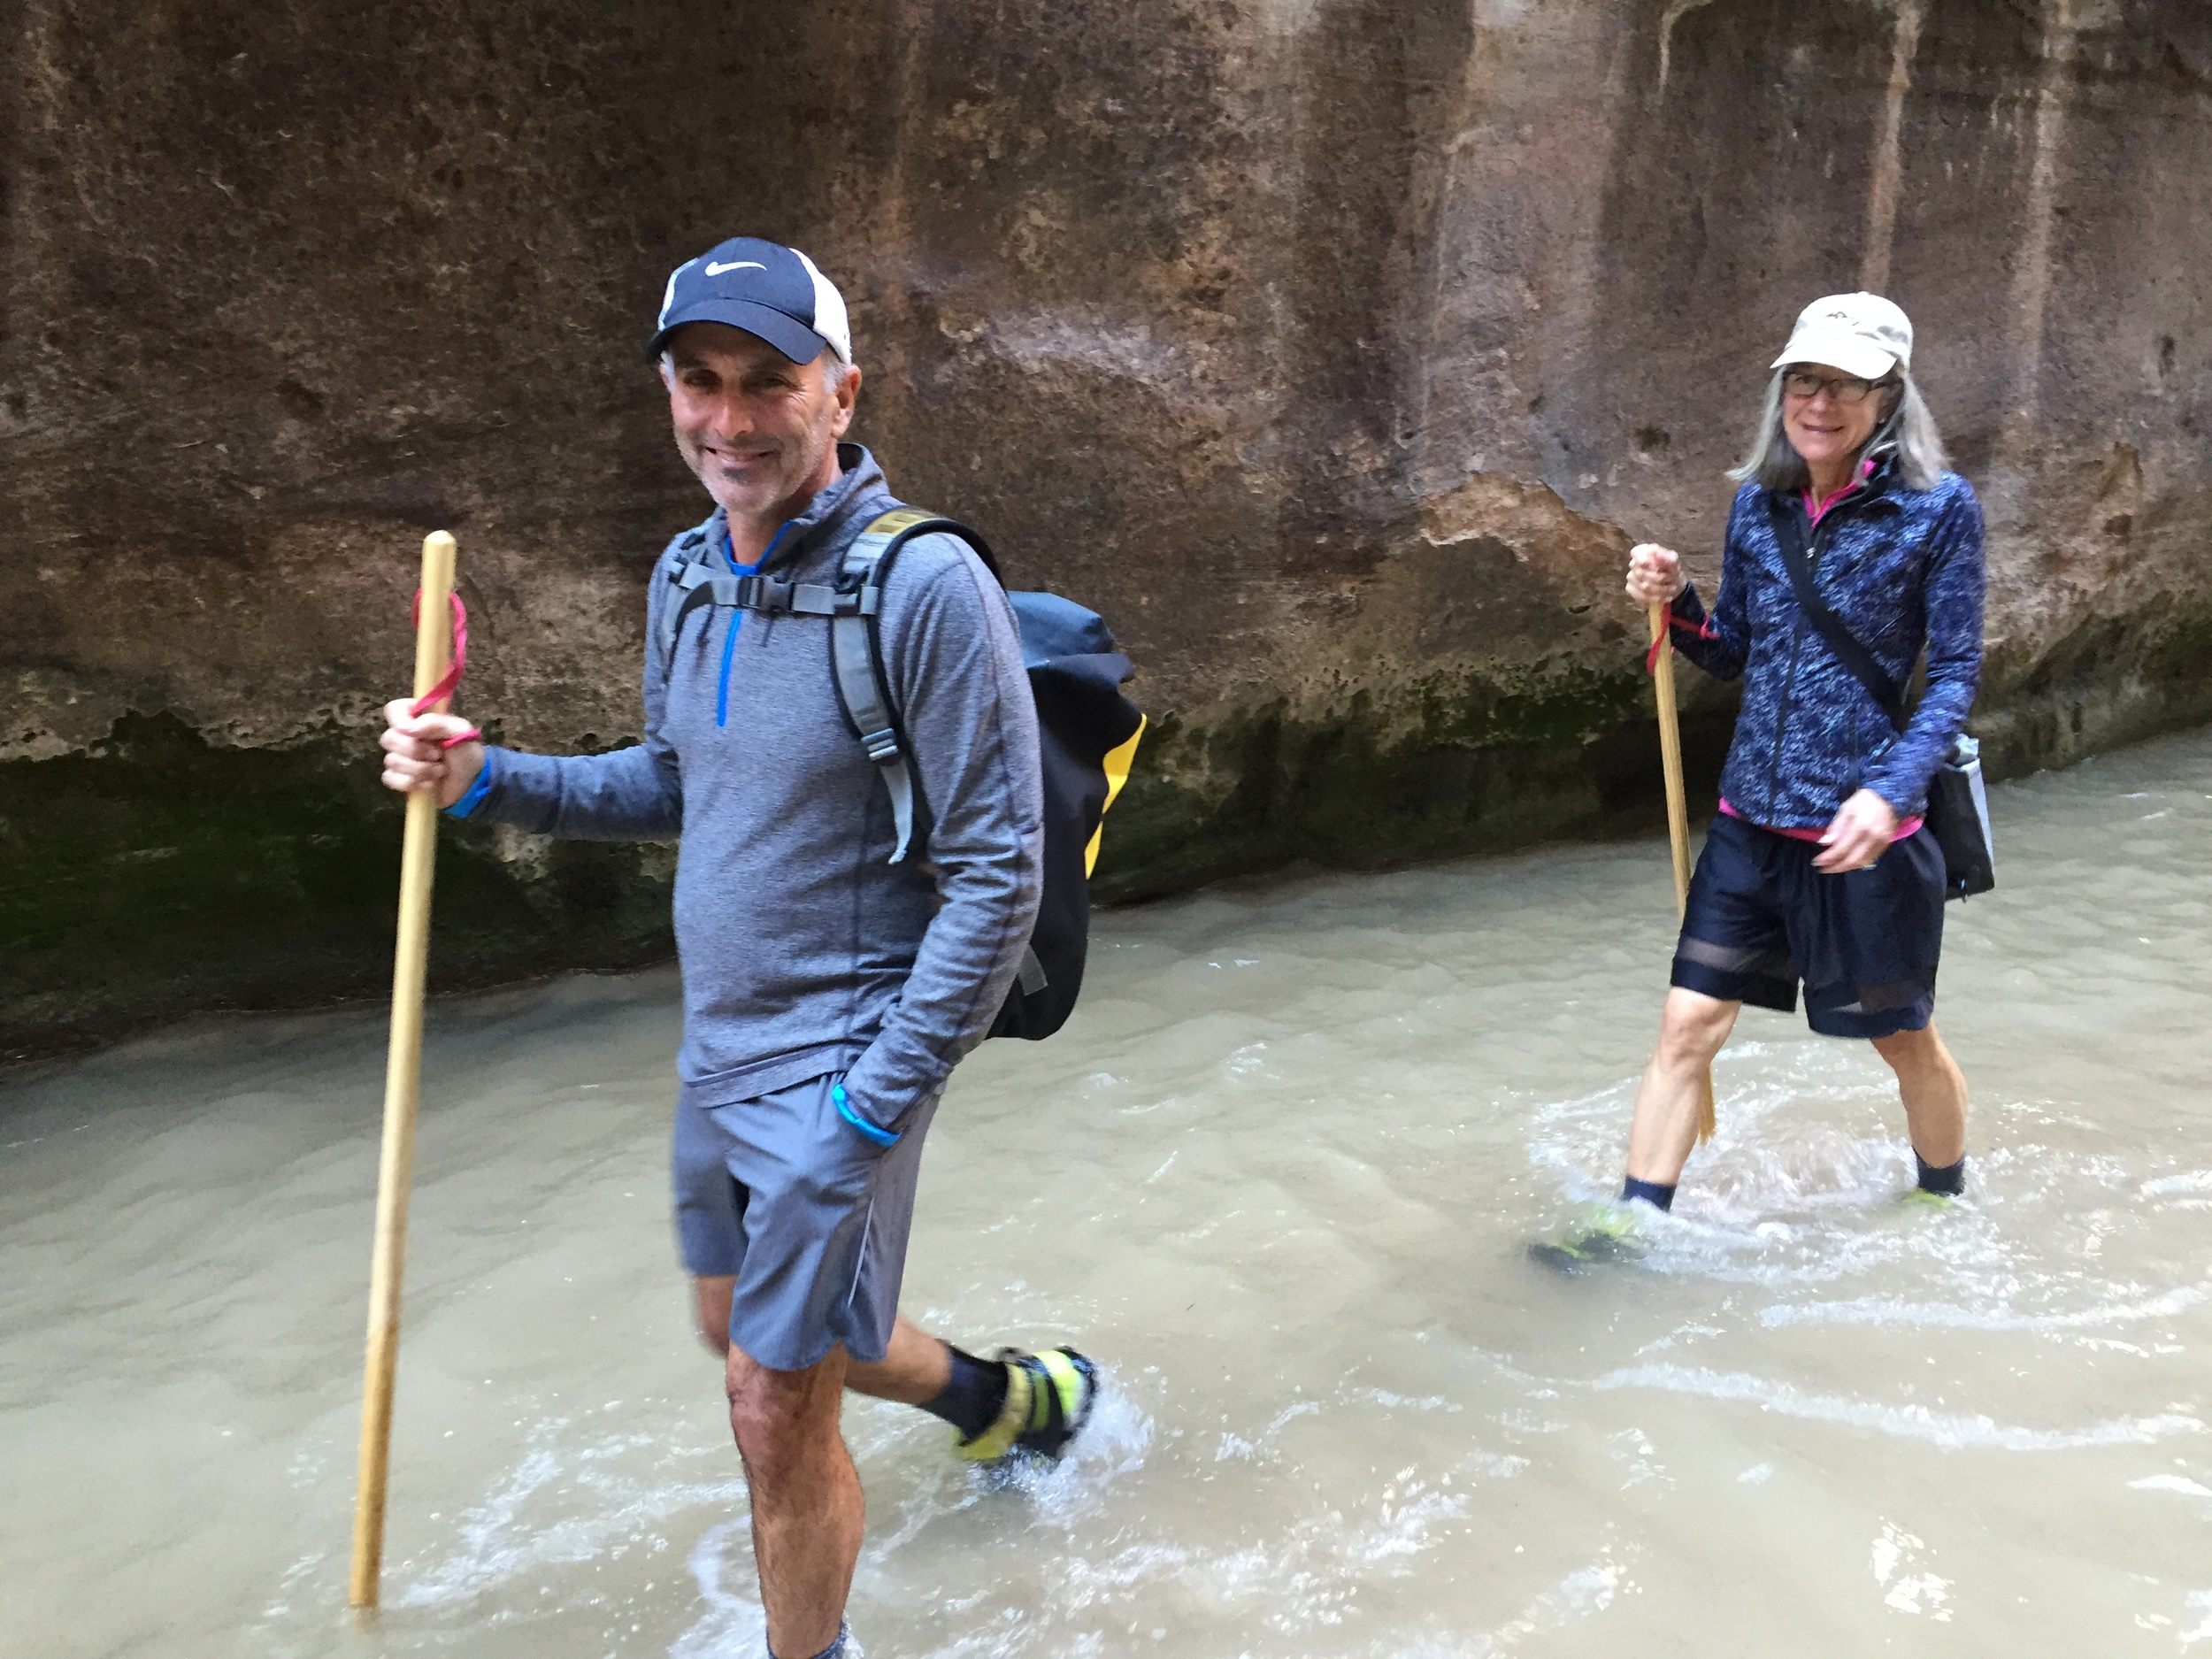 Hikers rent special shoes and sturdy hiking sticks to hike The Narrows.